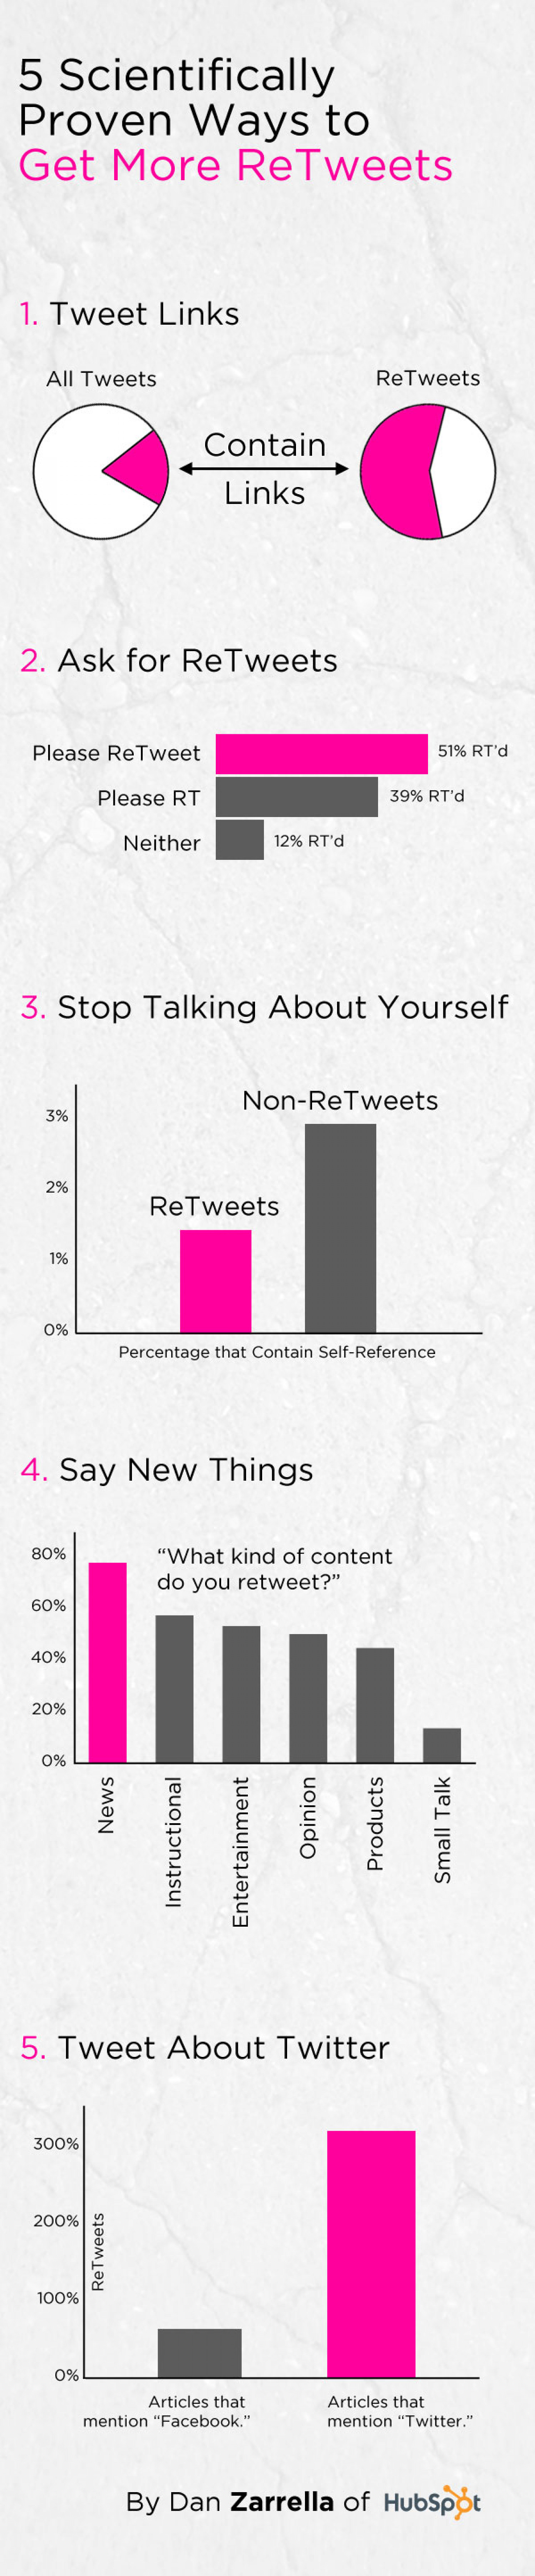 5 Scientifically Proven Ways to Get More ReTweets Infographic